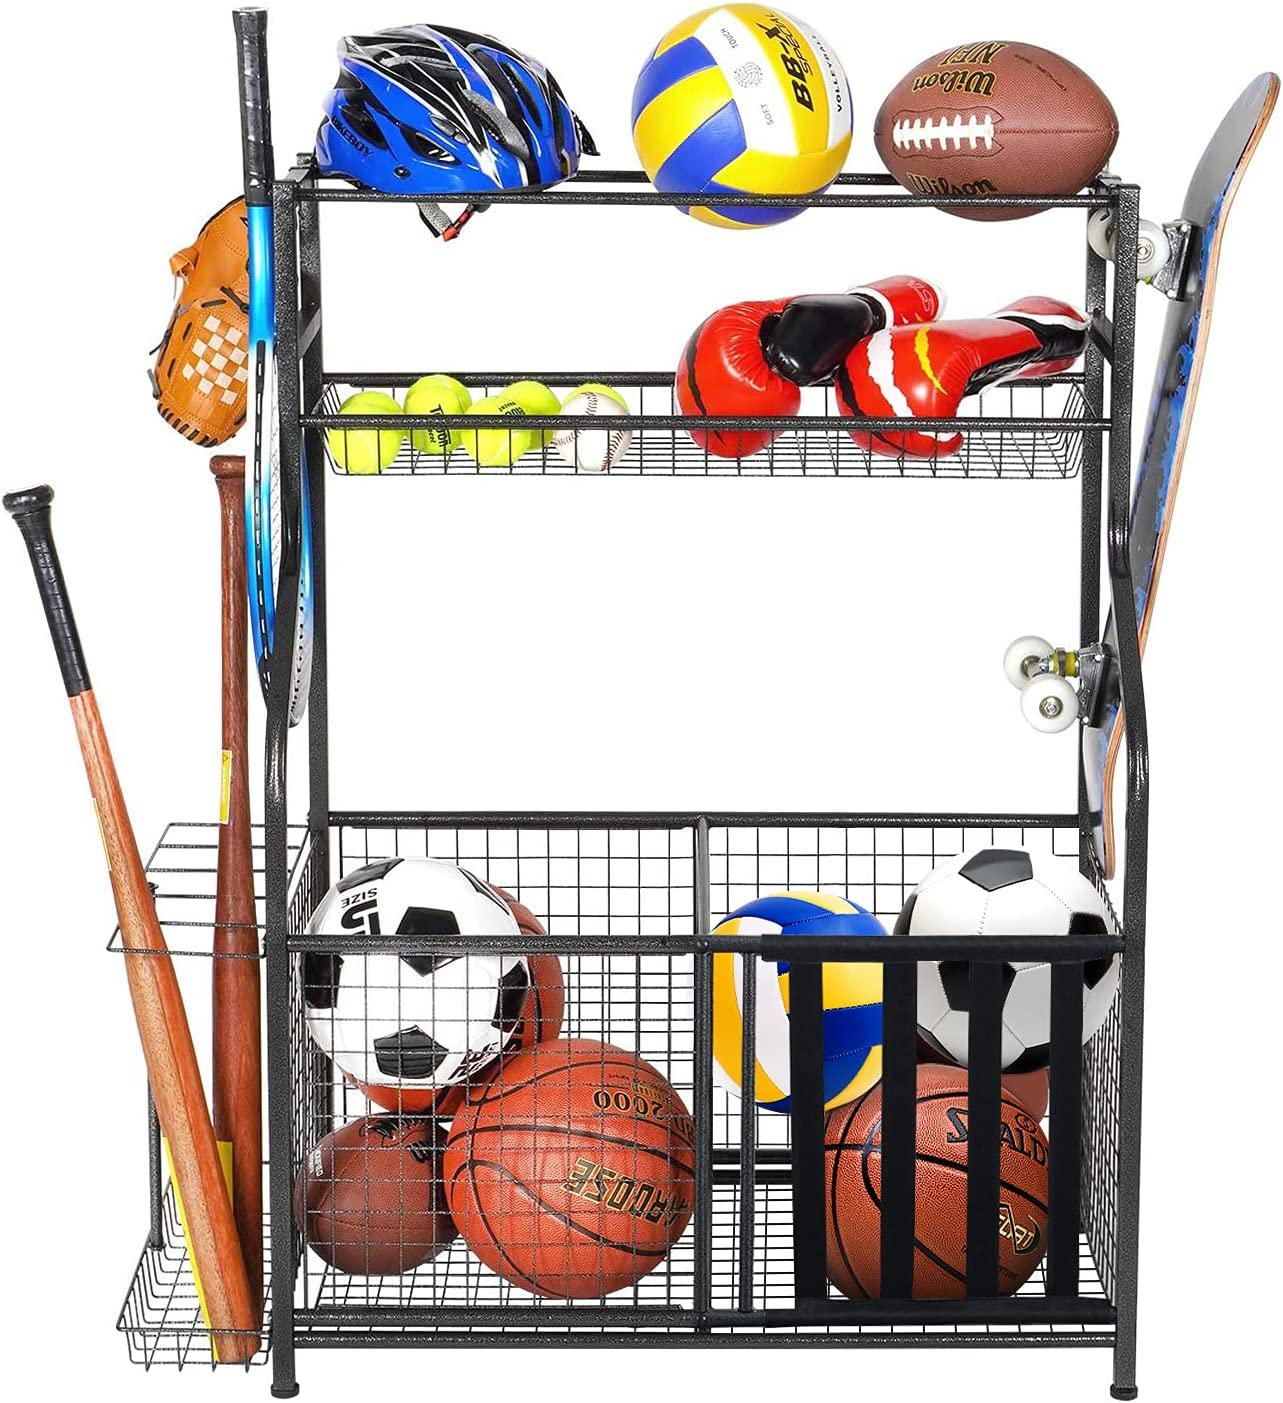 PLKOW Sports Equipment Colorado Springs Mall Max 75% OFF Storage Garage Indoor for Outdoor